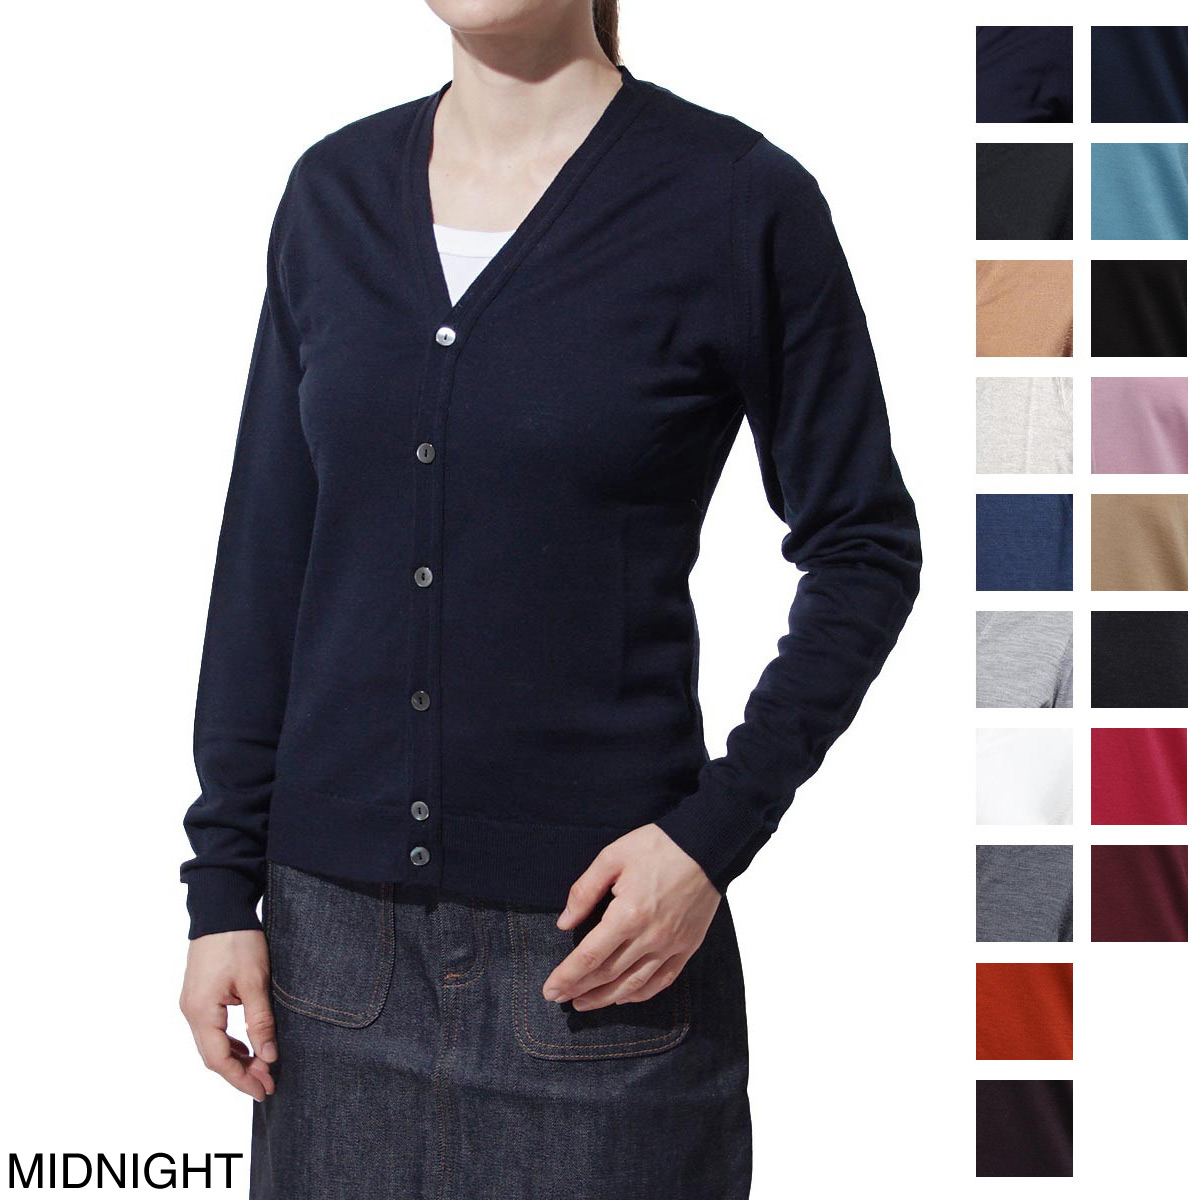 rimini midnight RIMINI in the fall and winter basic the John Smedley JOHN SMEDLEY V neck cardigan Lady's wool U.K.